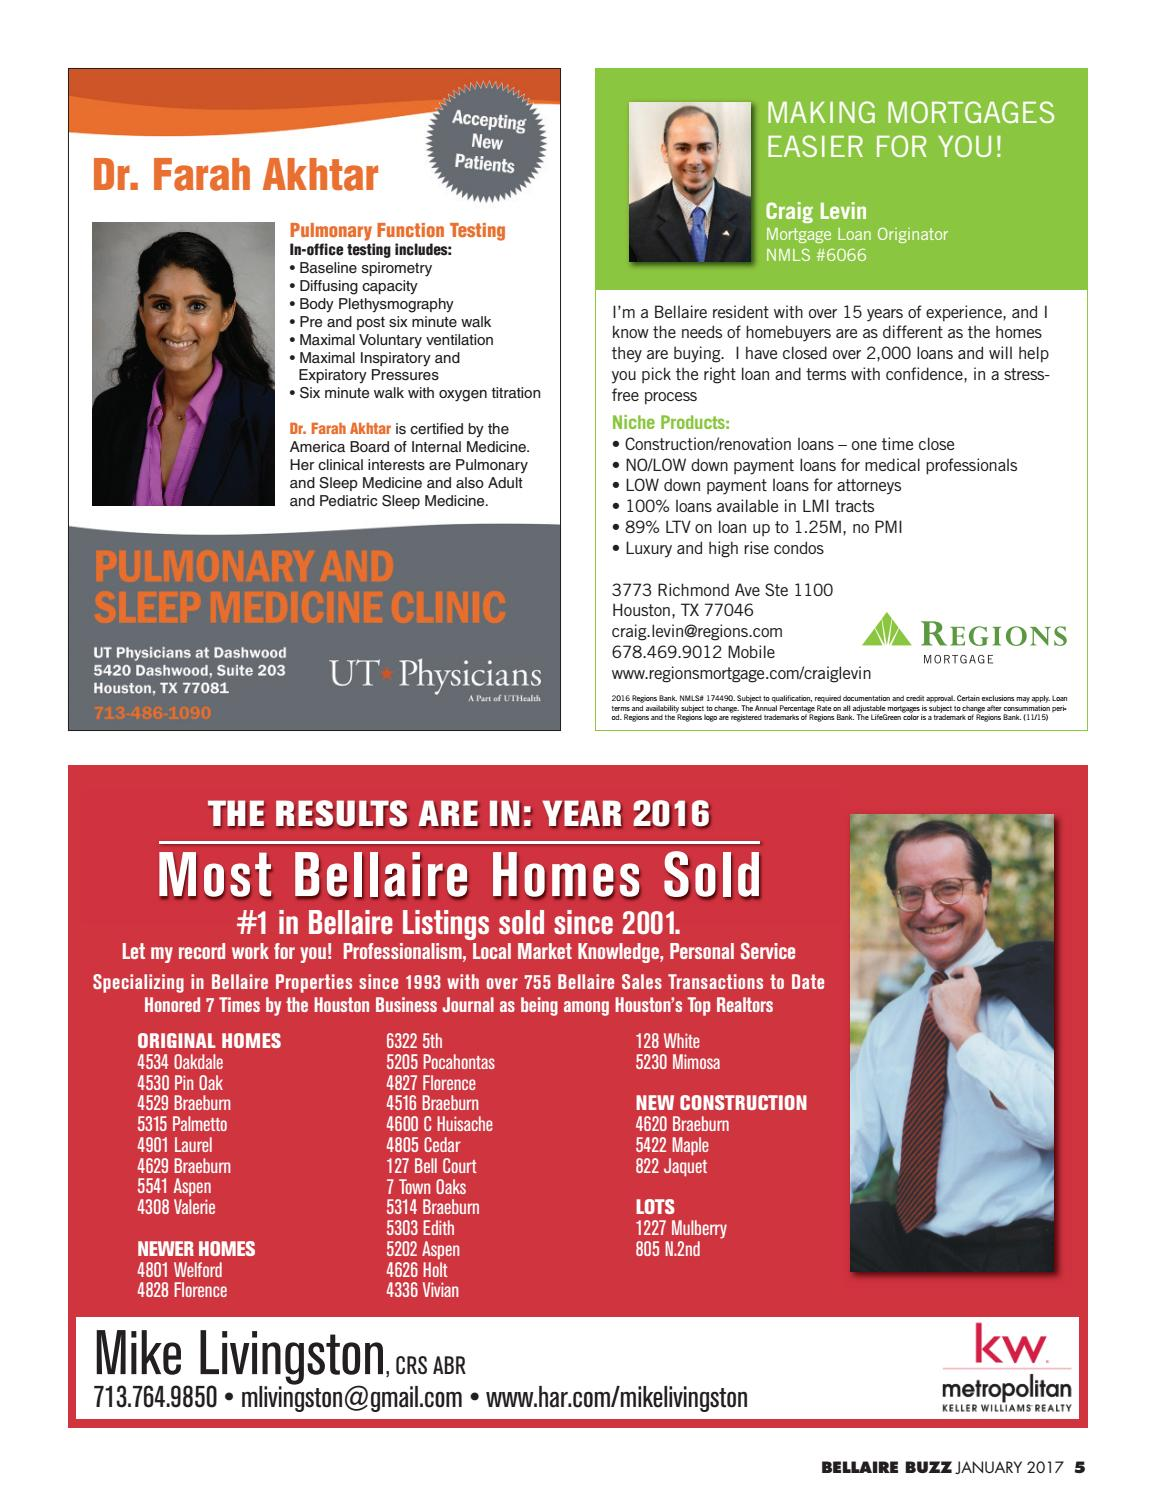 The Bellaire Buzz - January 2017